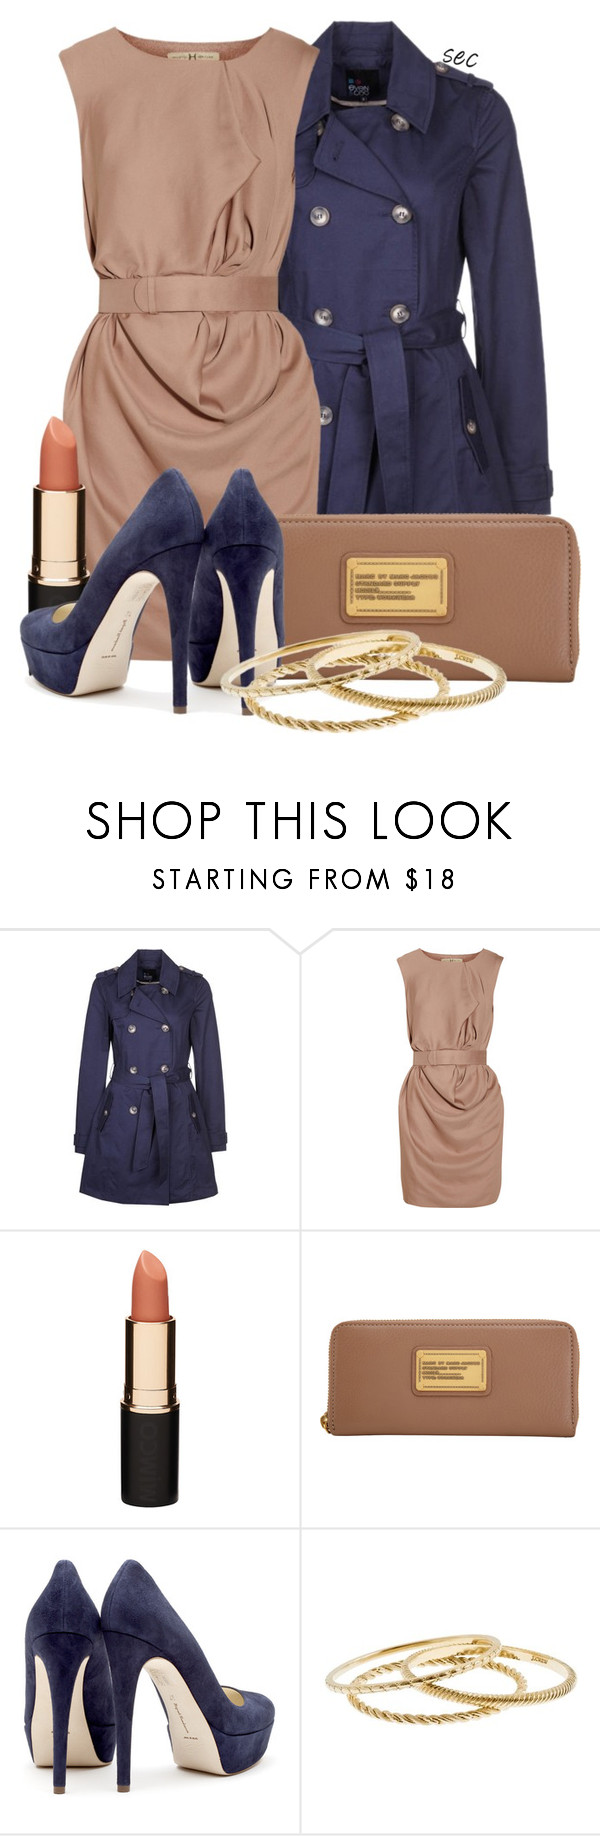 """Untitled #350"" by coombsie24 ❤ liked on Polyvore featuring even&odd, Halston Heritage, Mimco, Marc by Marc Jacobs, Rupert Sanderson and J.Crew"